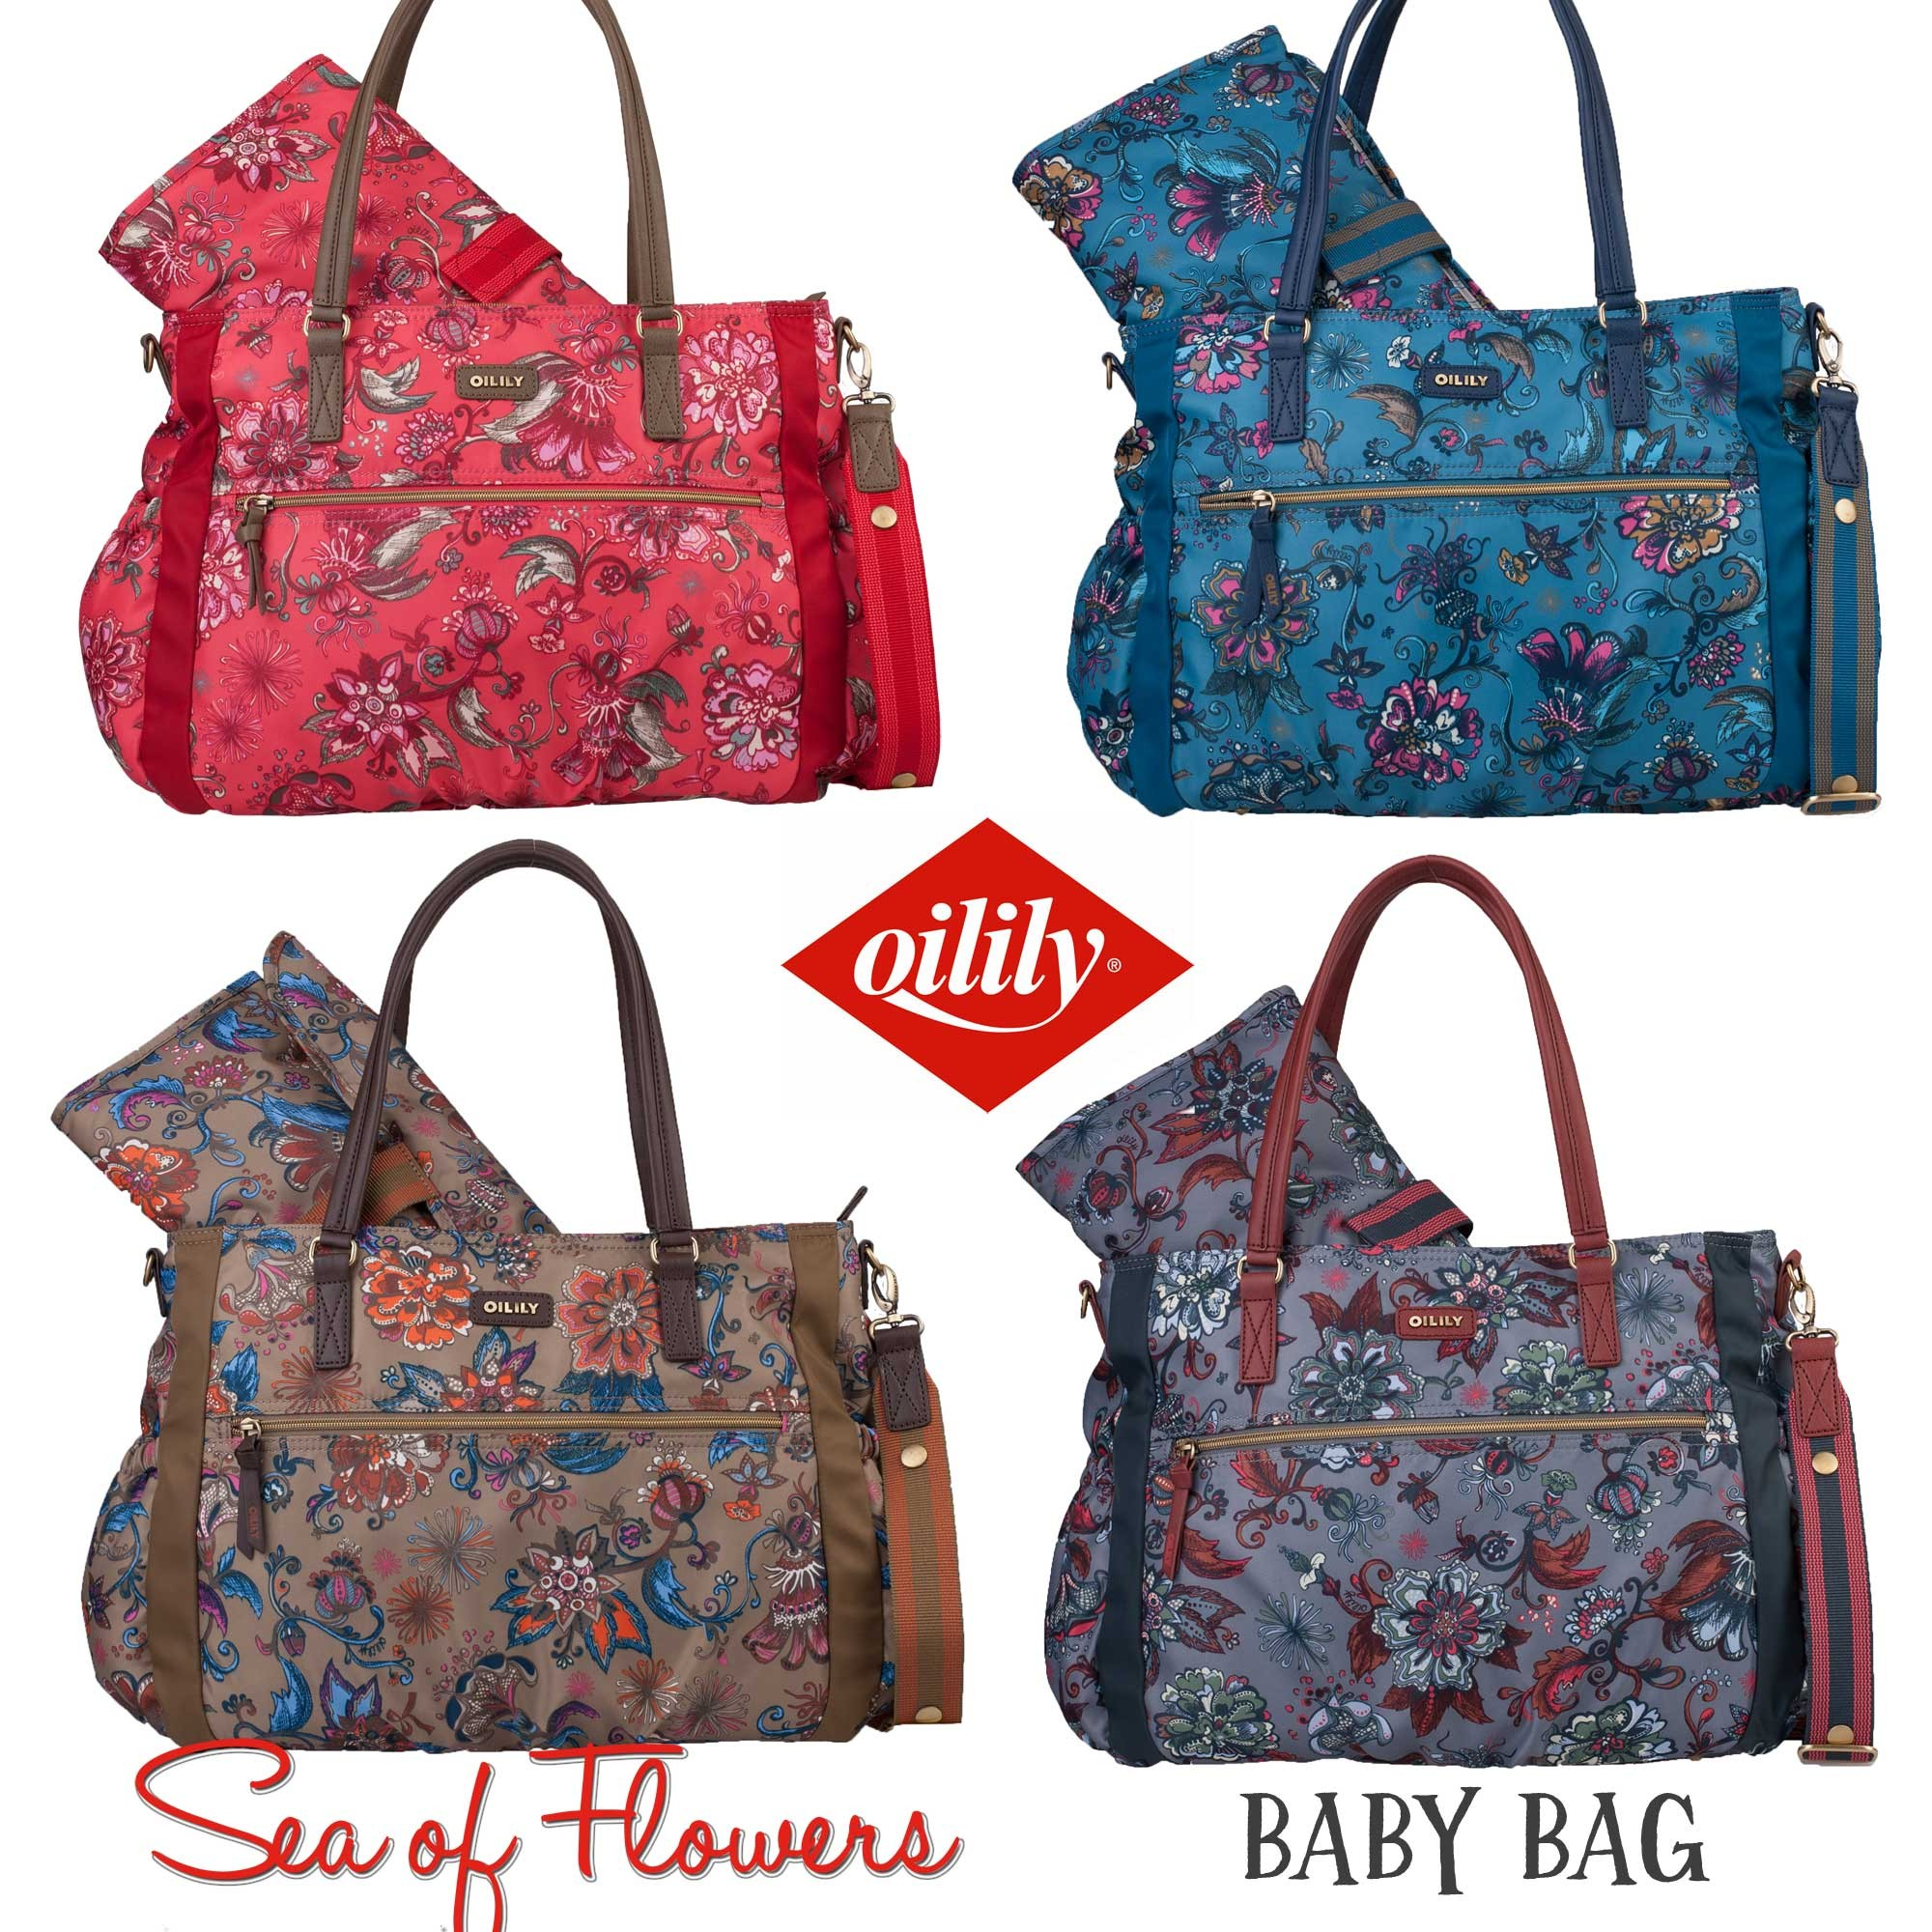 oilily wickeltasche baby bag sea of flowers alle farben. Black Bedroom Furniture Sets. Home Design Ideas